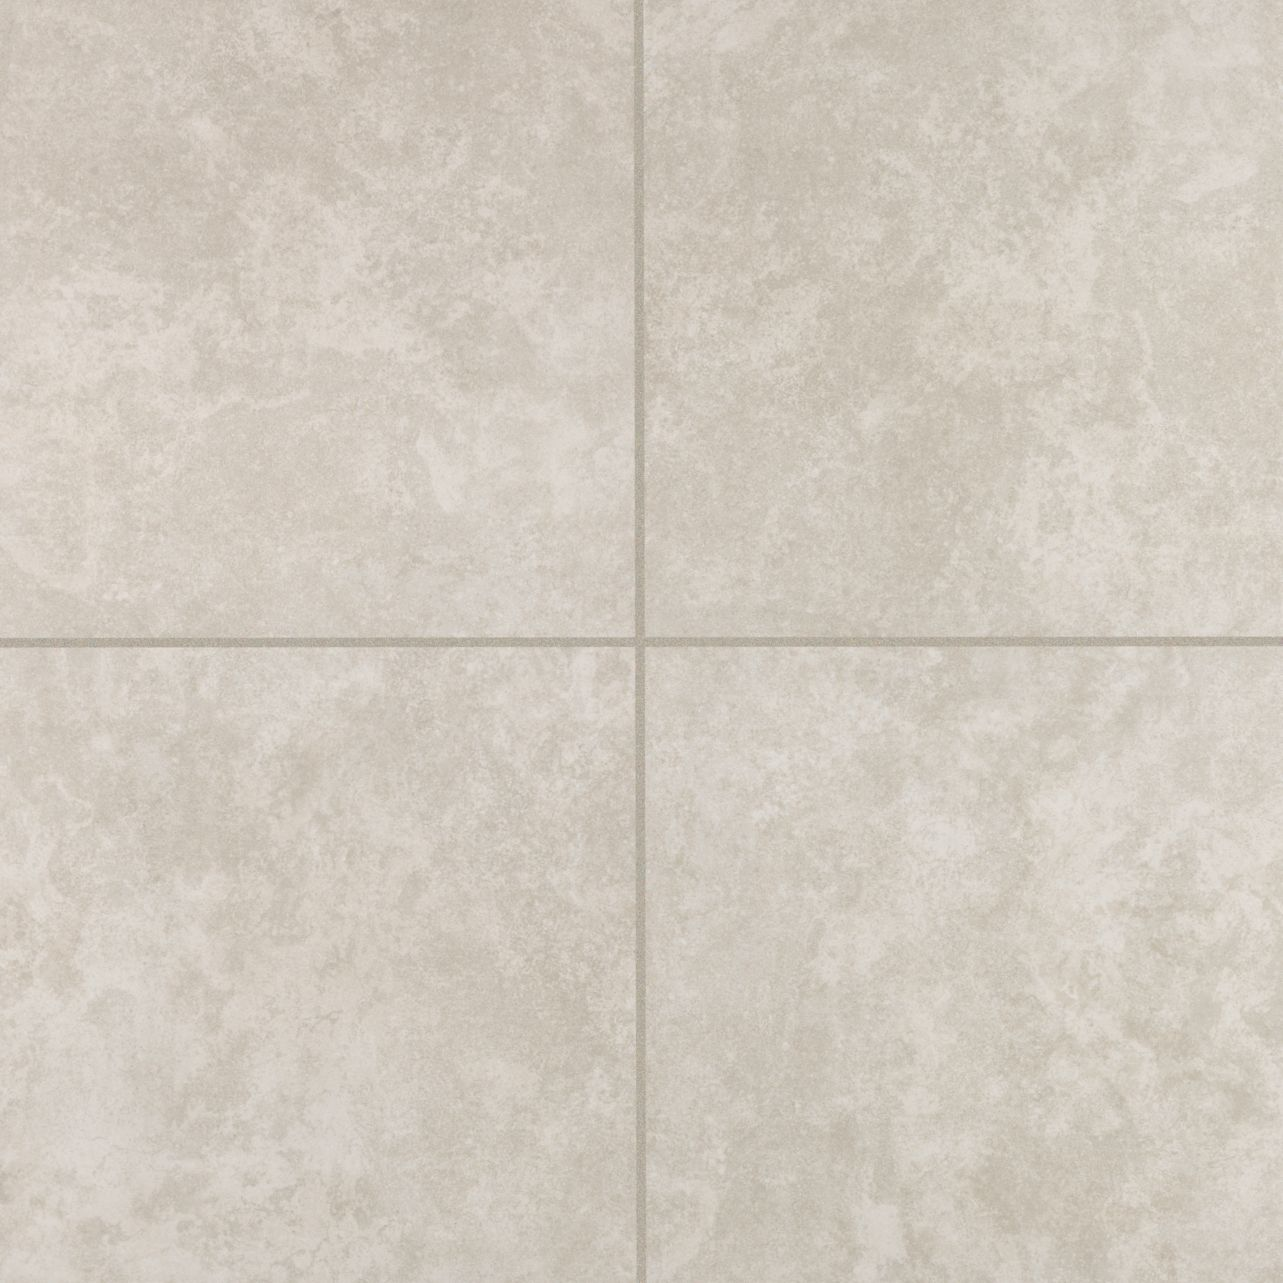 CeramicPorcelainTile Astello Floor Cream  thumbnail #1